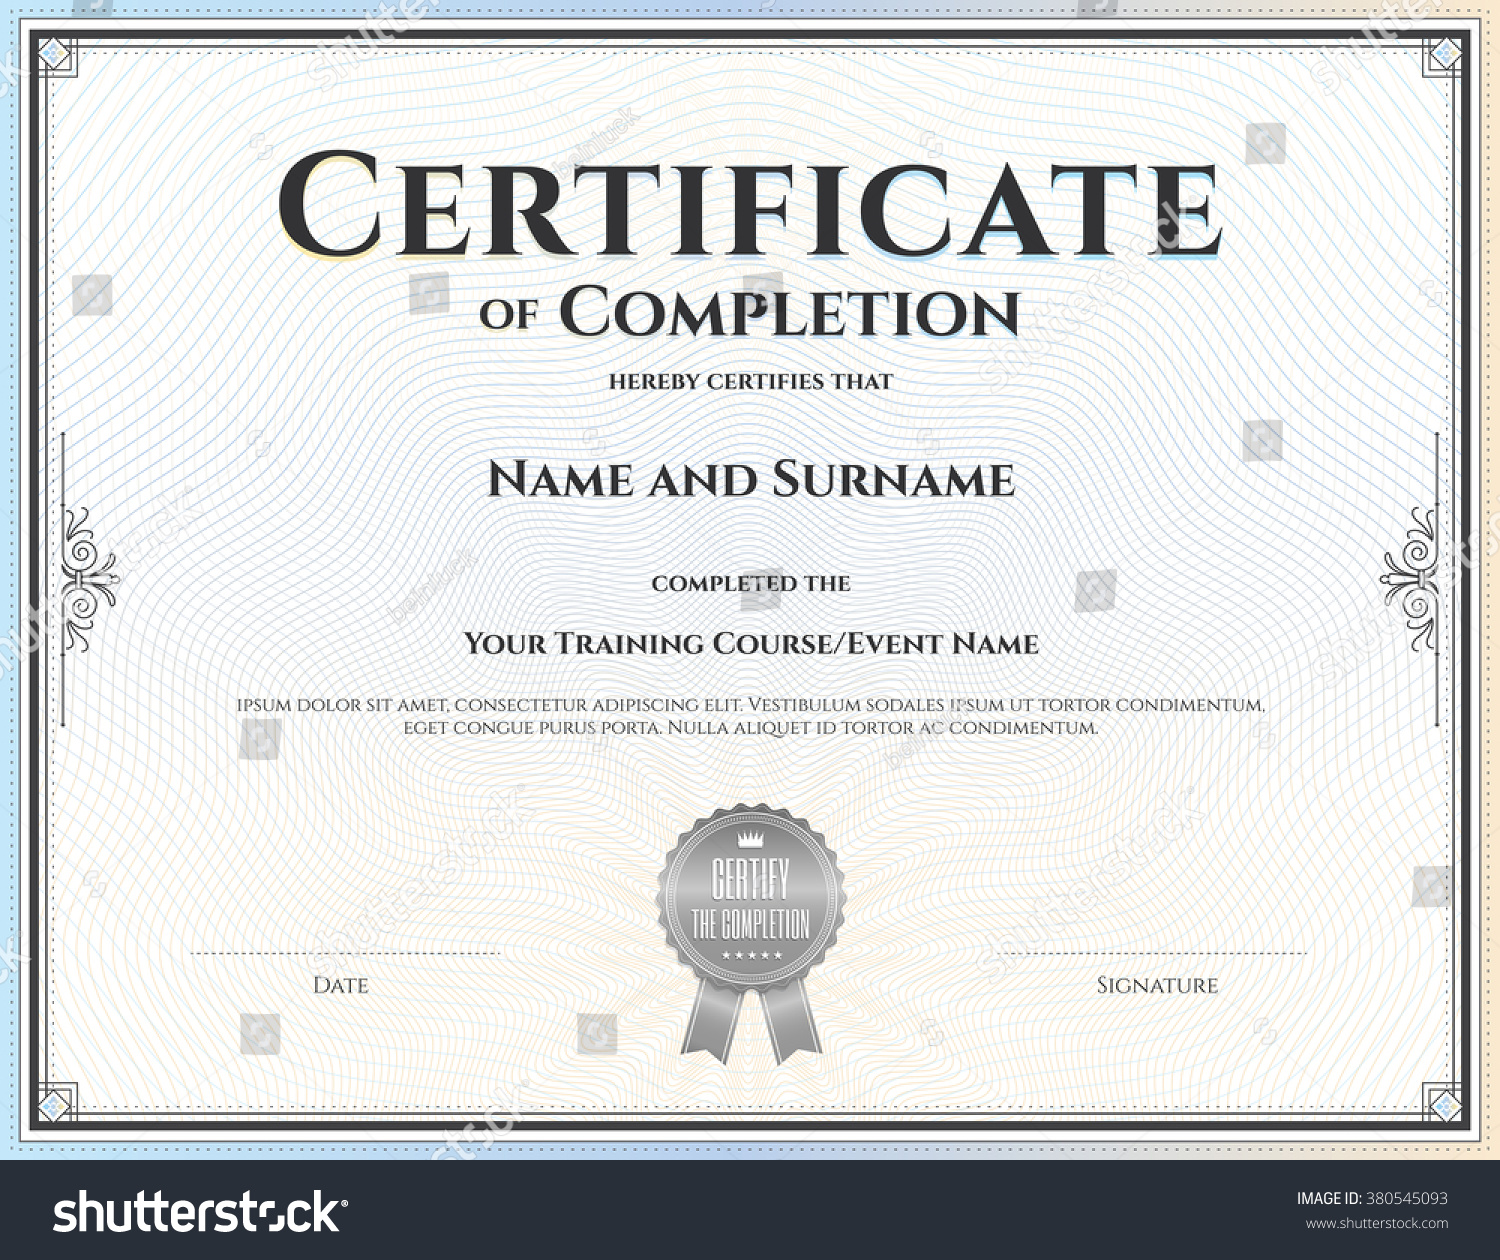 Free templates for certificates of completion rsvp card template sample of certificate of completion word cover page template free stock vector certificate of completion template xflitez Gallery